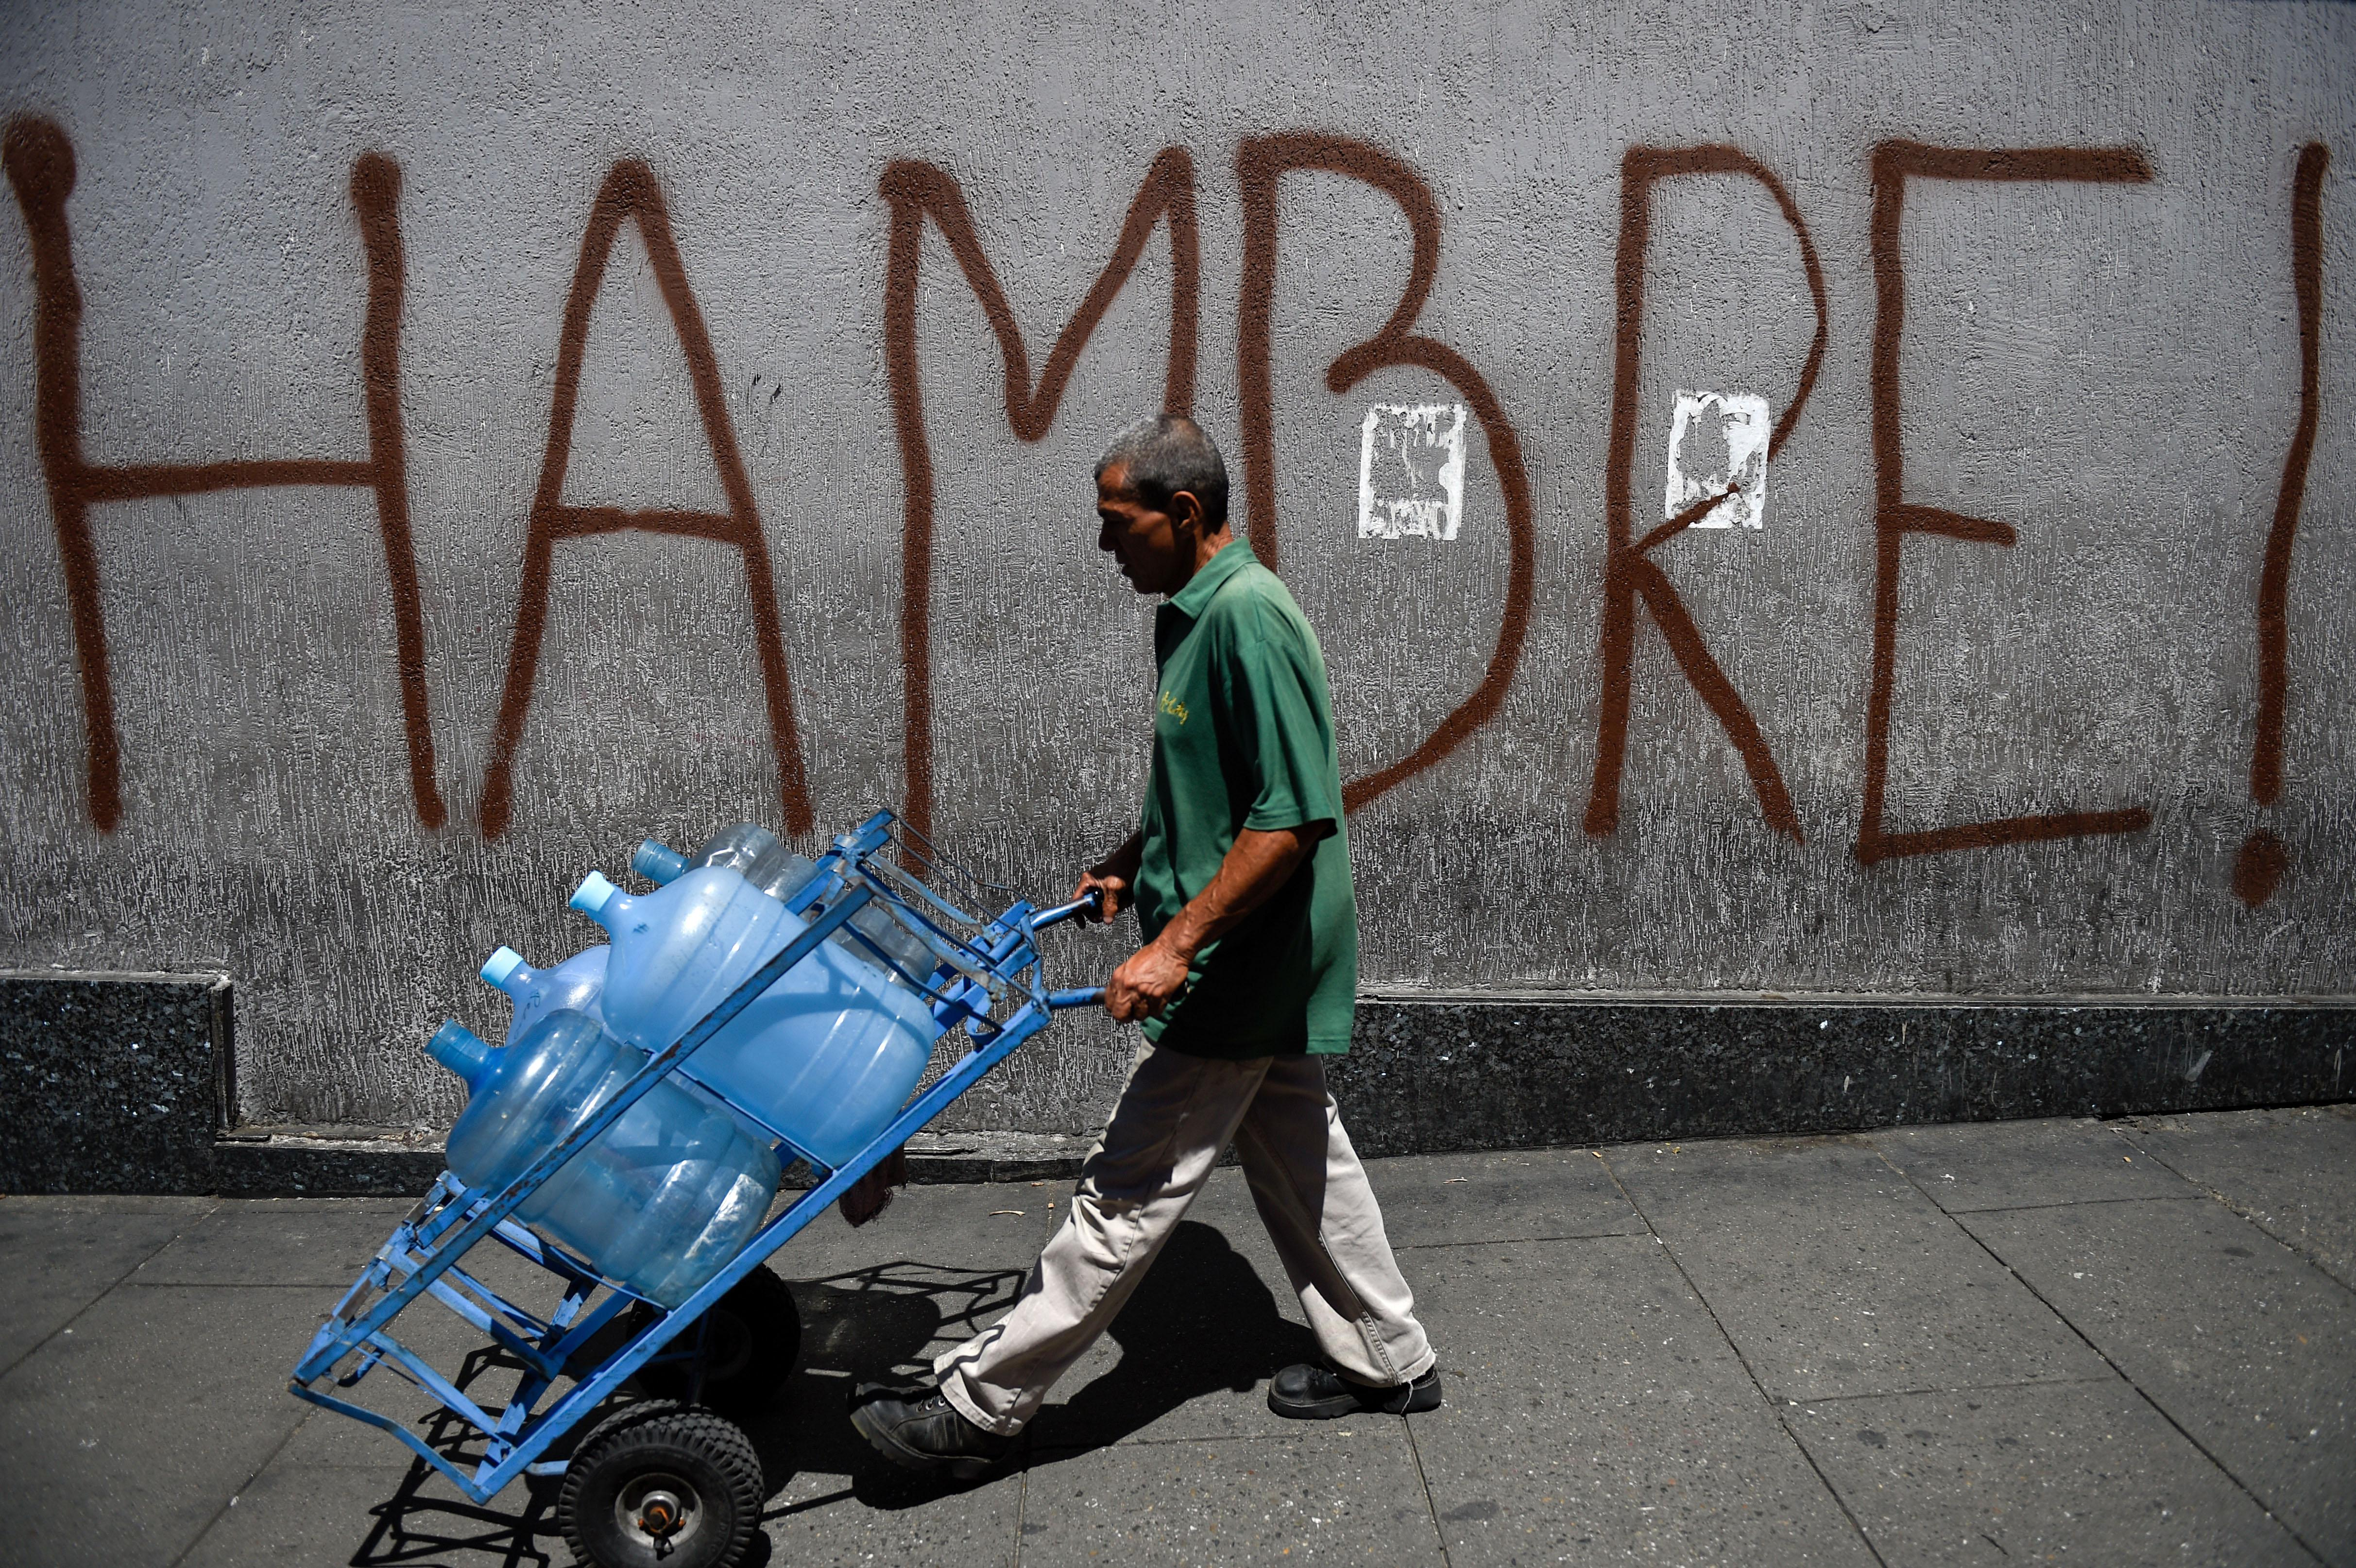 """A Venezuelan man pushes a hand truck loaded with water jugs in front of street graffiti reading """"HAMBRE!"""" or """"hungry"""" in Spanish."""